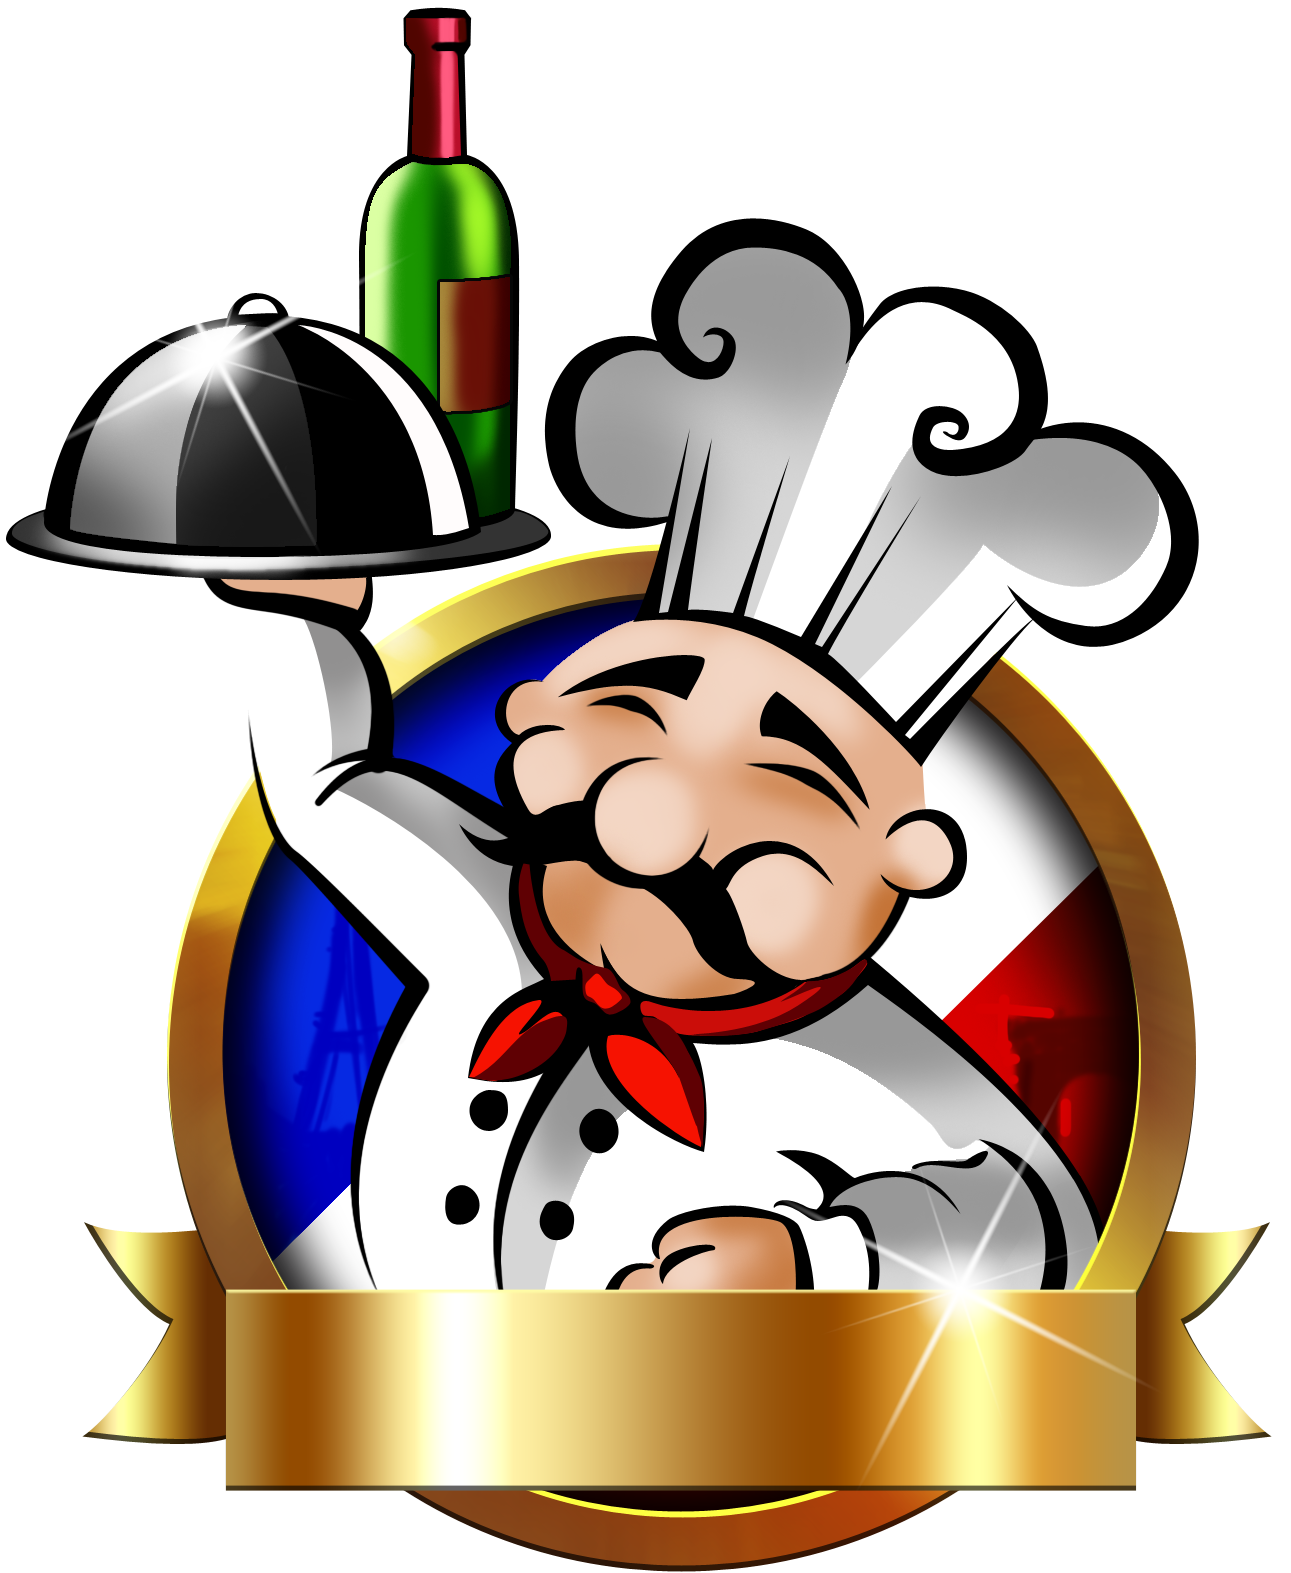 Chef clipart cheff. Pin by vollalie on